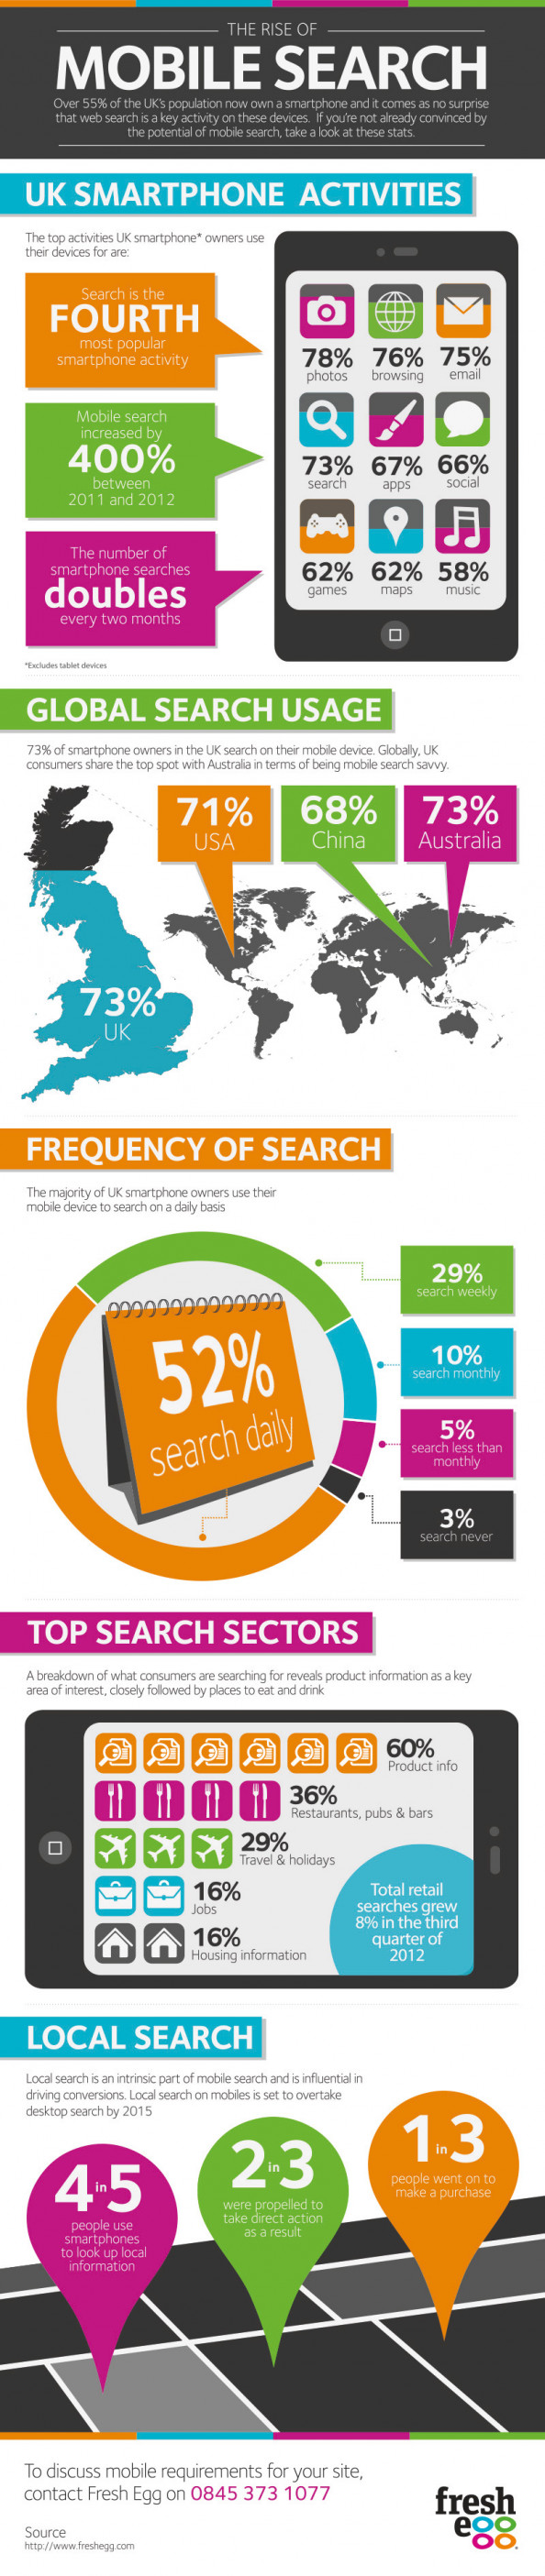 The Rise of Mobile Search Infographic